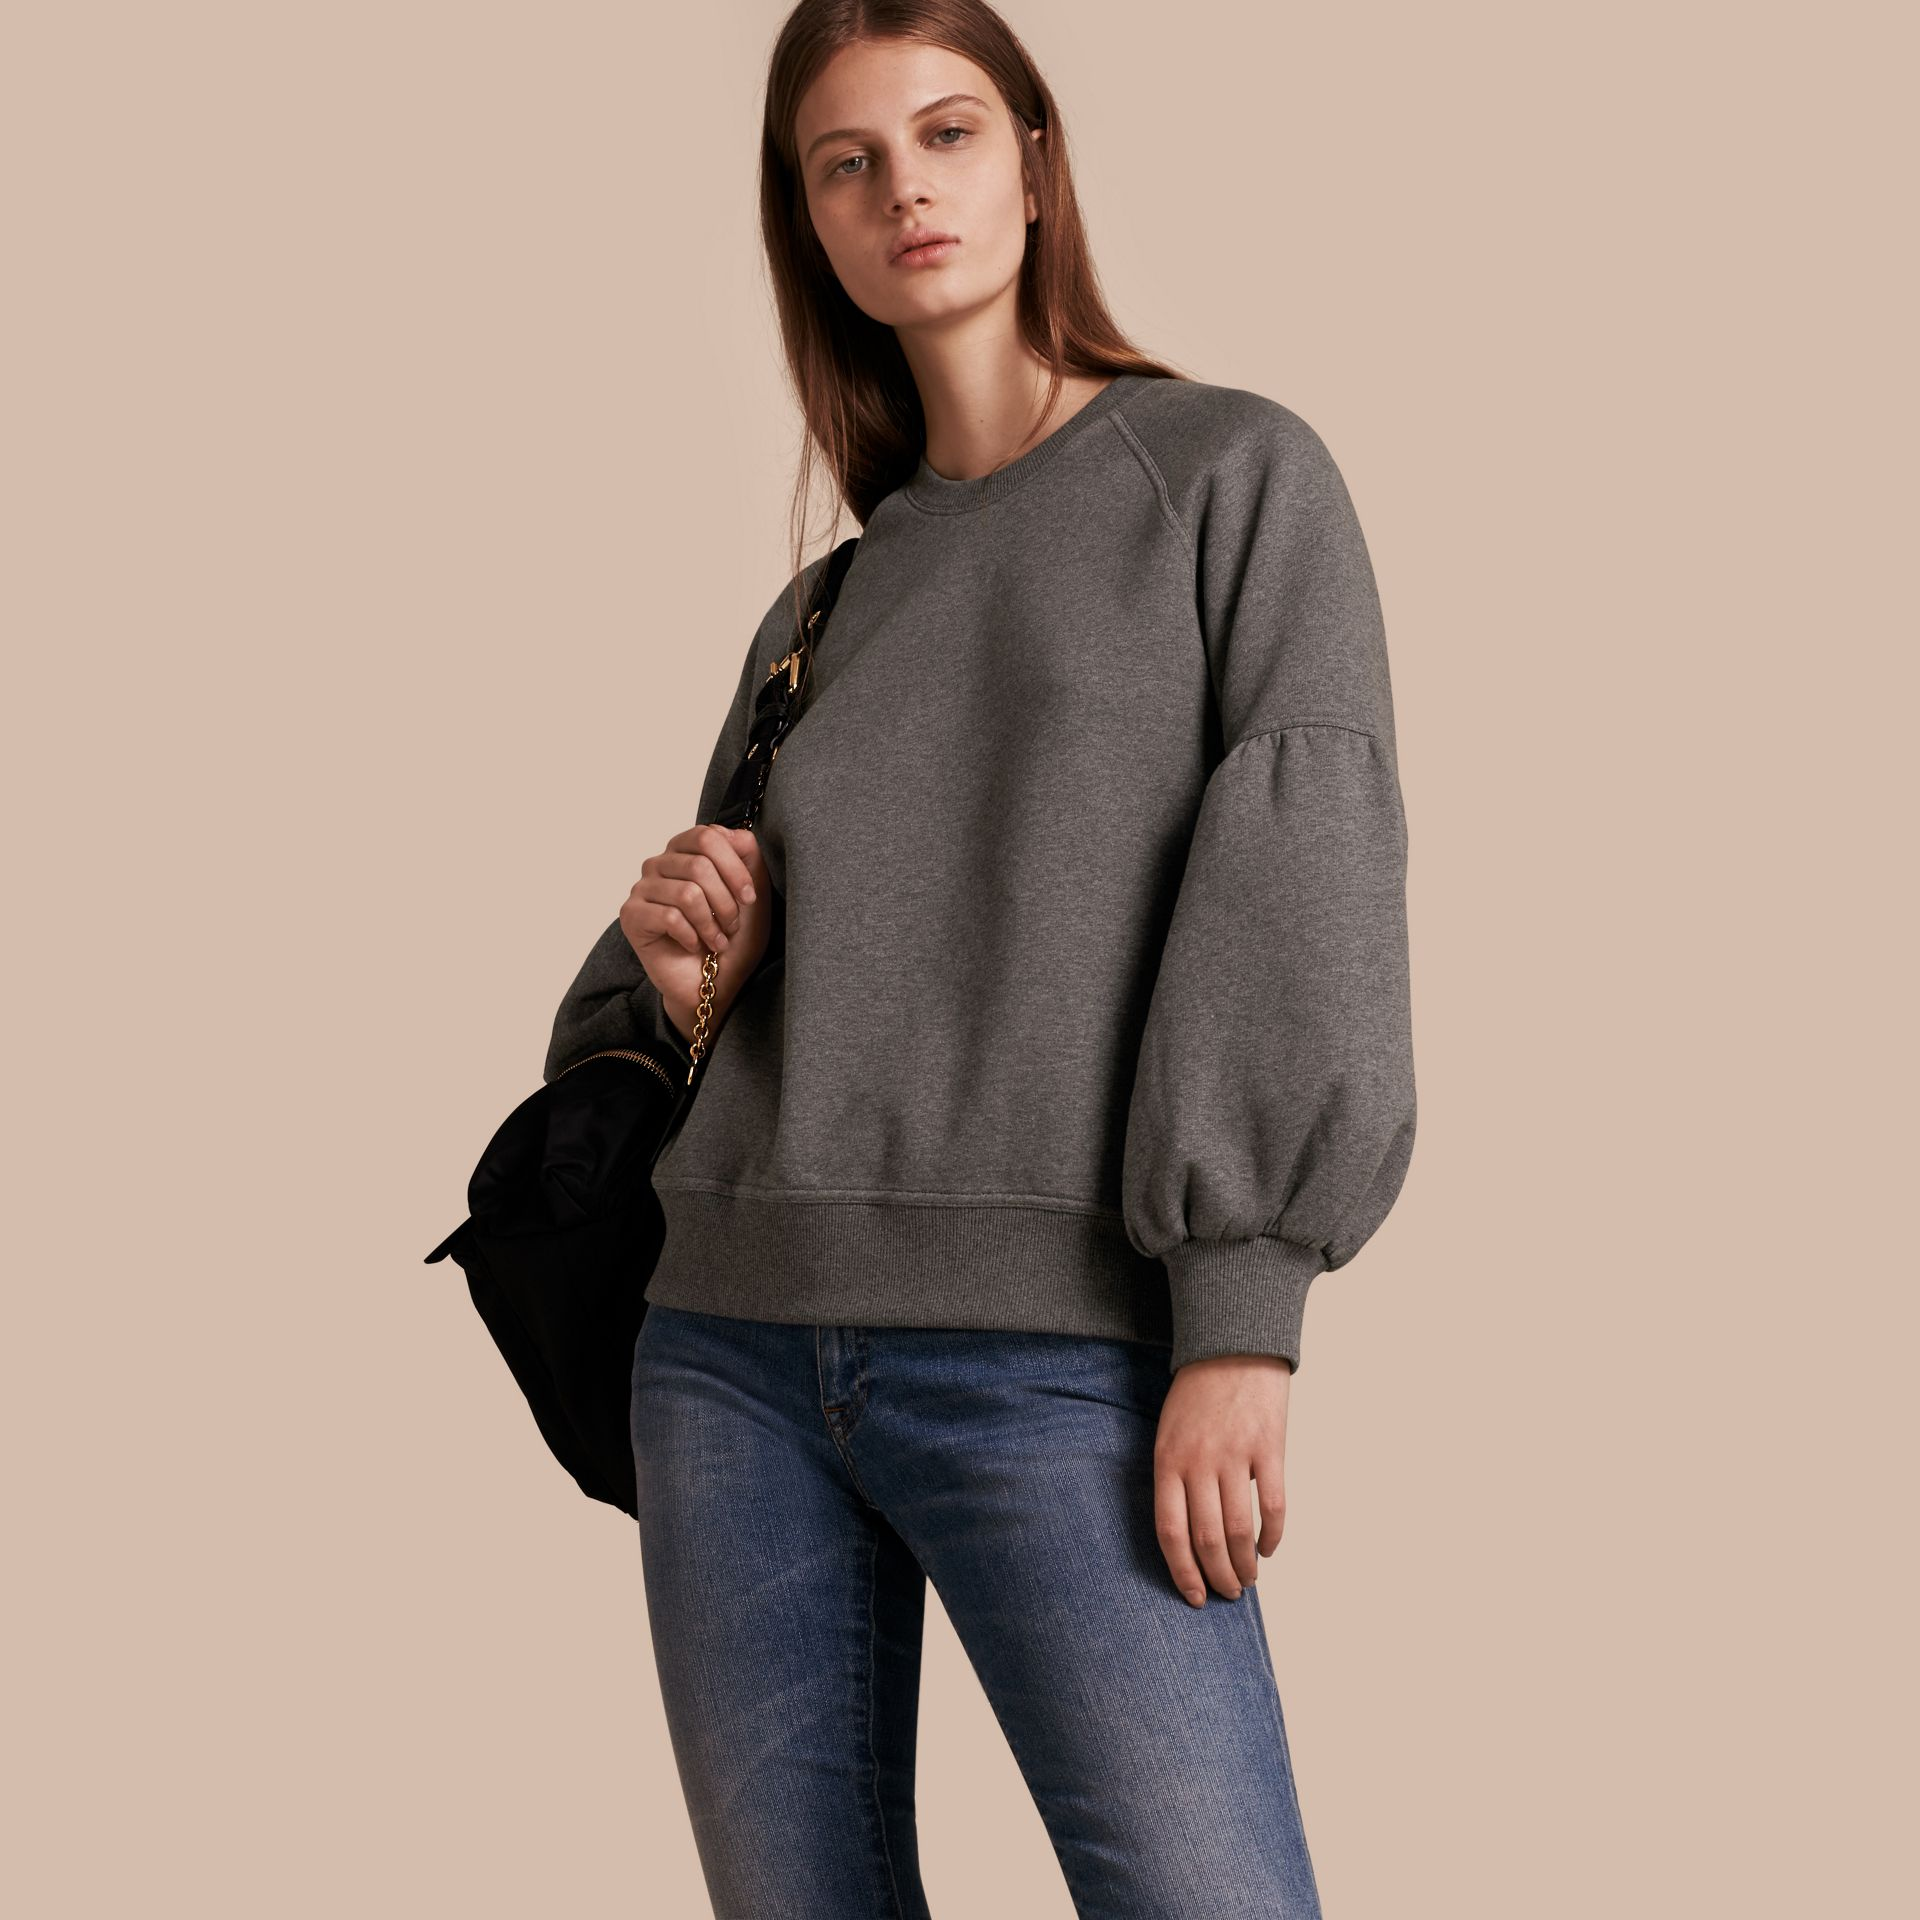 Brushed-back Jersey Sweatshirt with Bell Sleeves Mid Grey Melange - gallery image 1